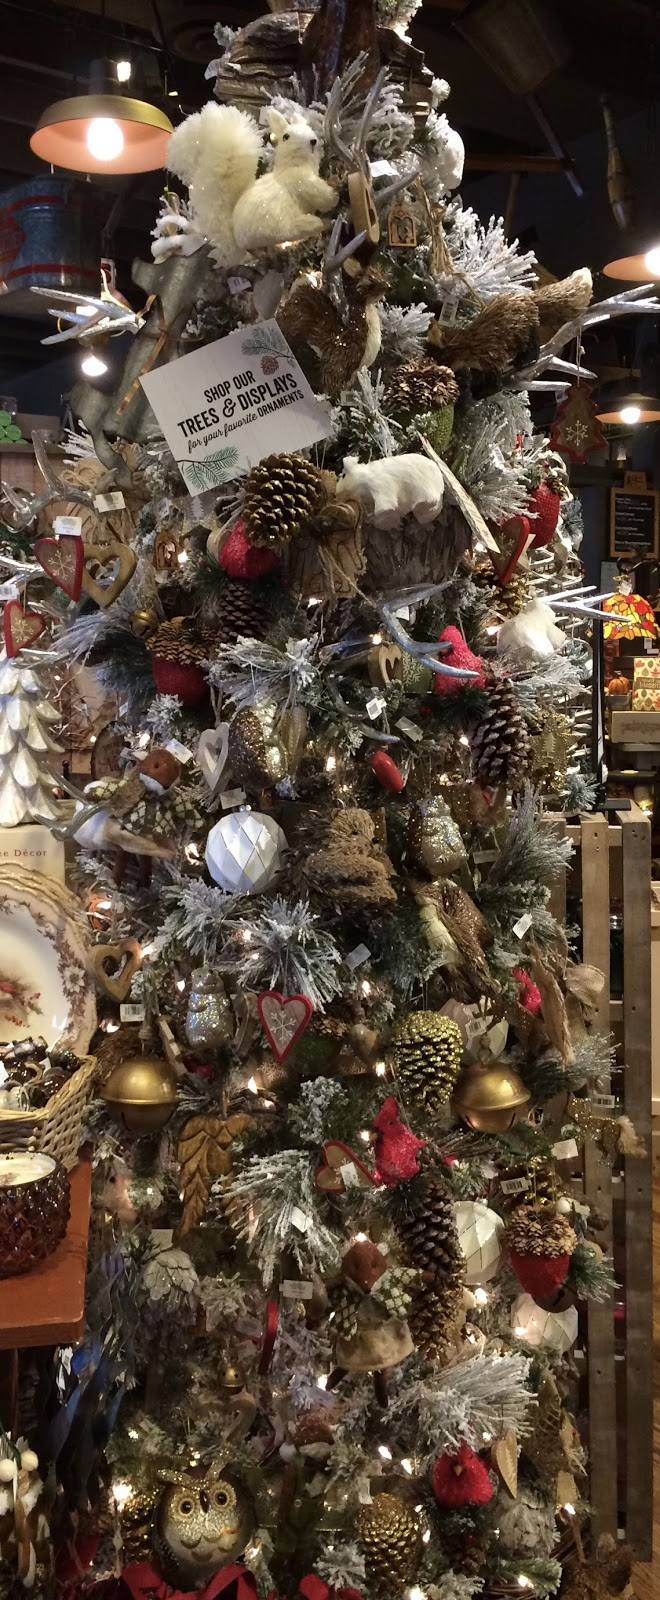 Nanaland: Cracker Barrel Christmas